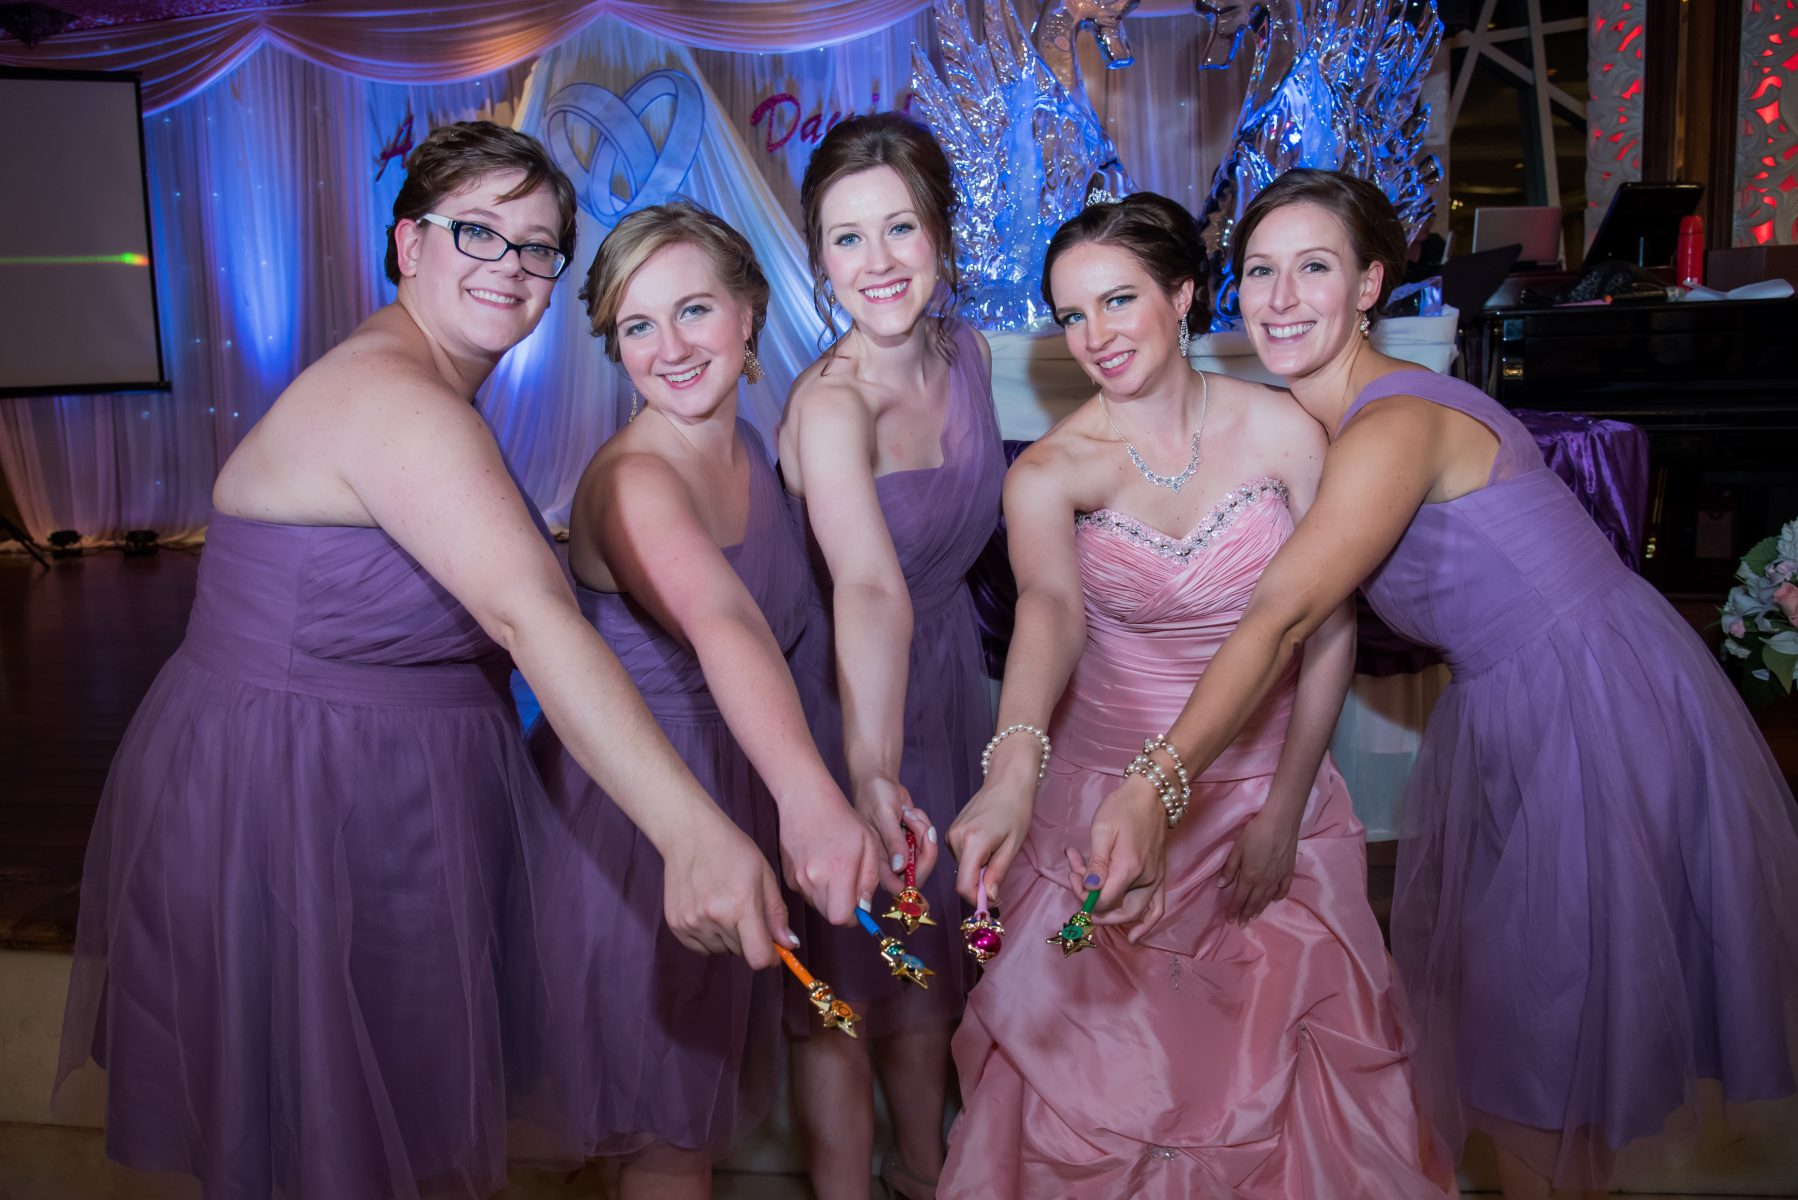 four young white women in lavendar dresses stand around a young white woman wearing a poofy pink dress, all holding sailor moon transformation pens